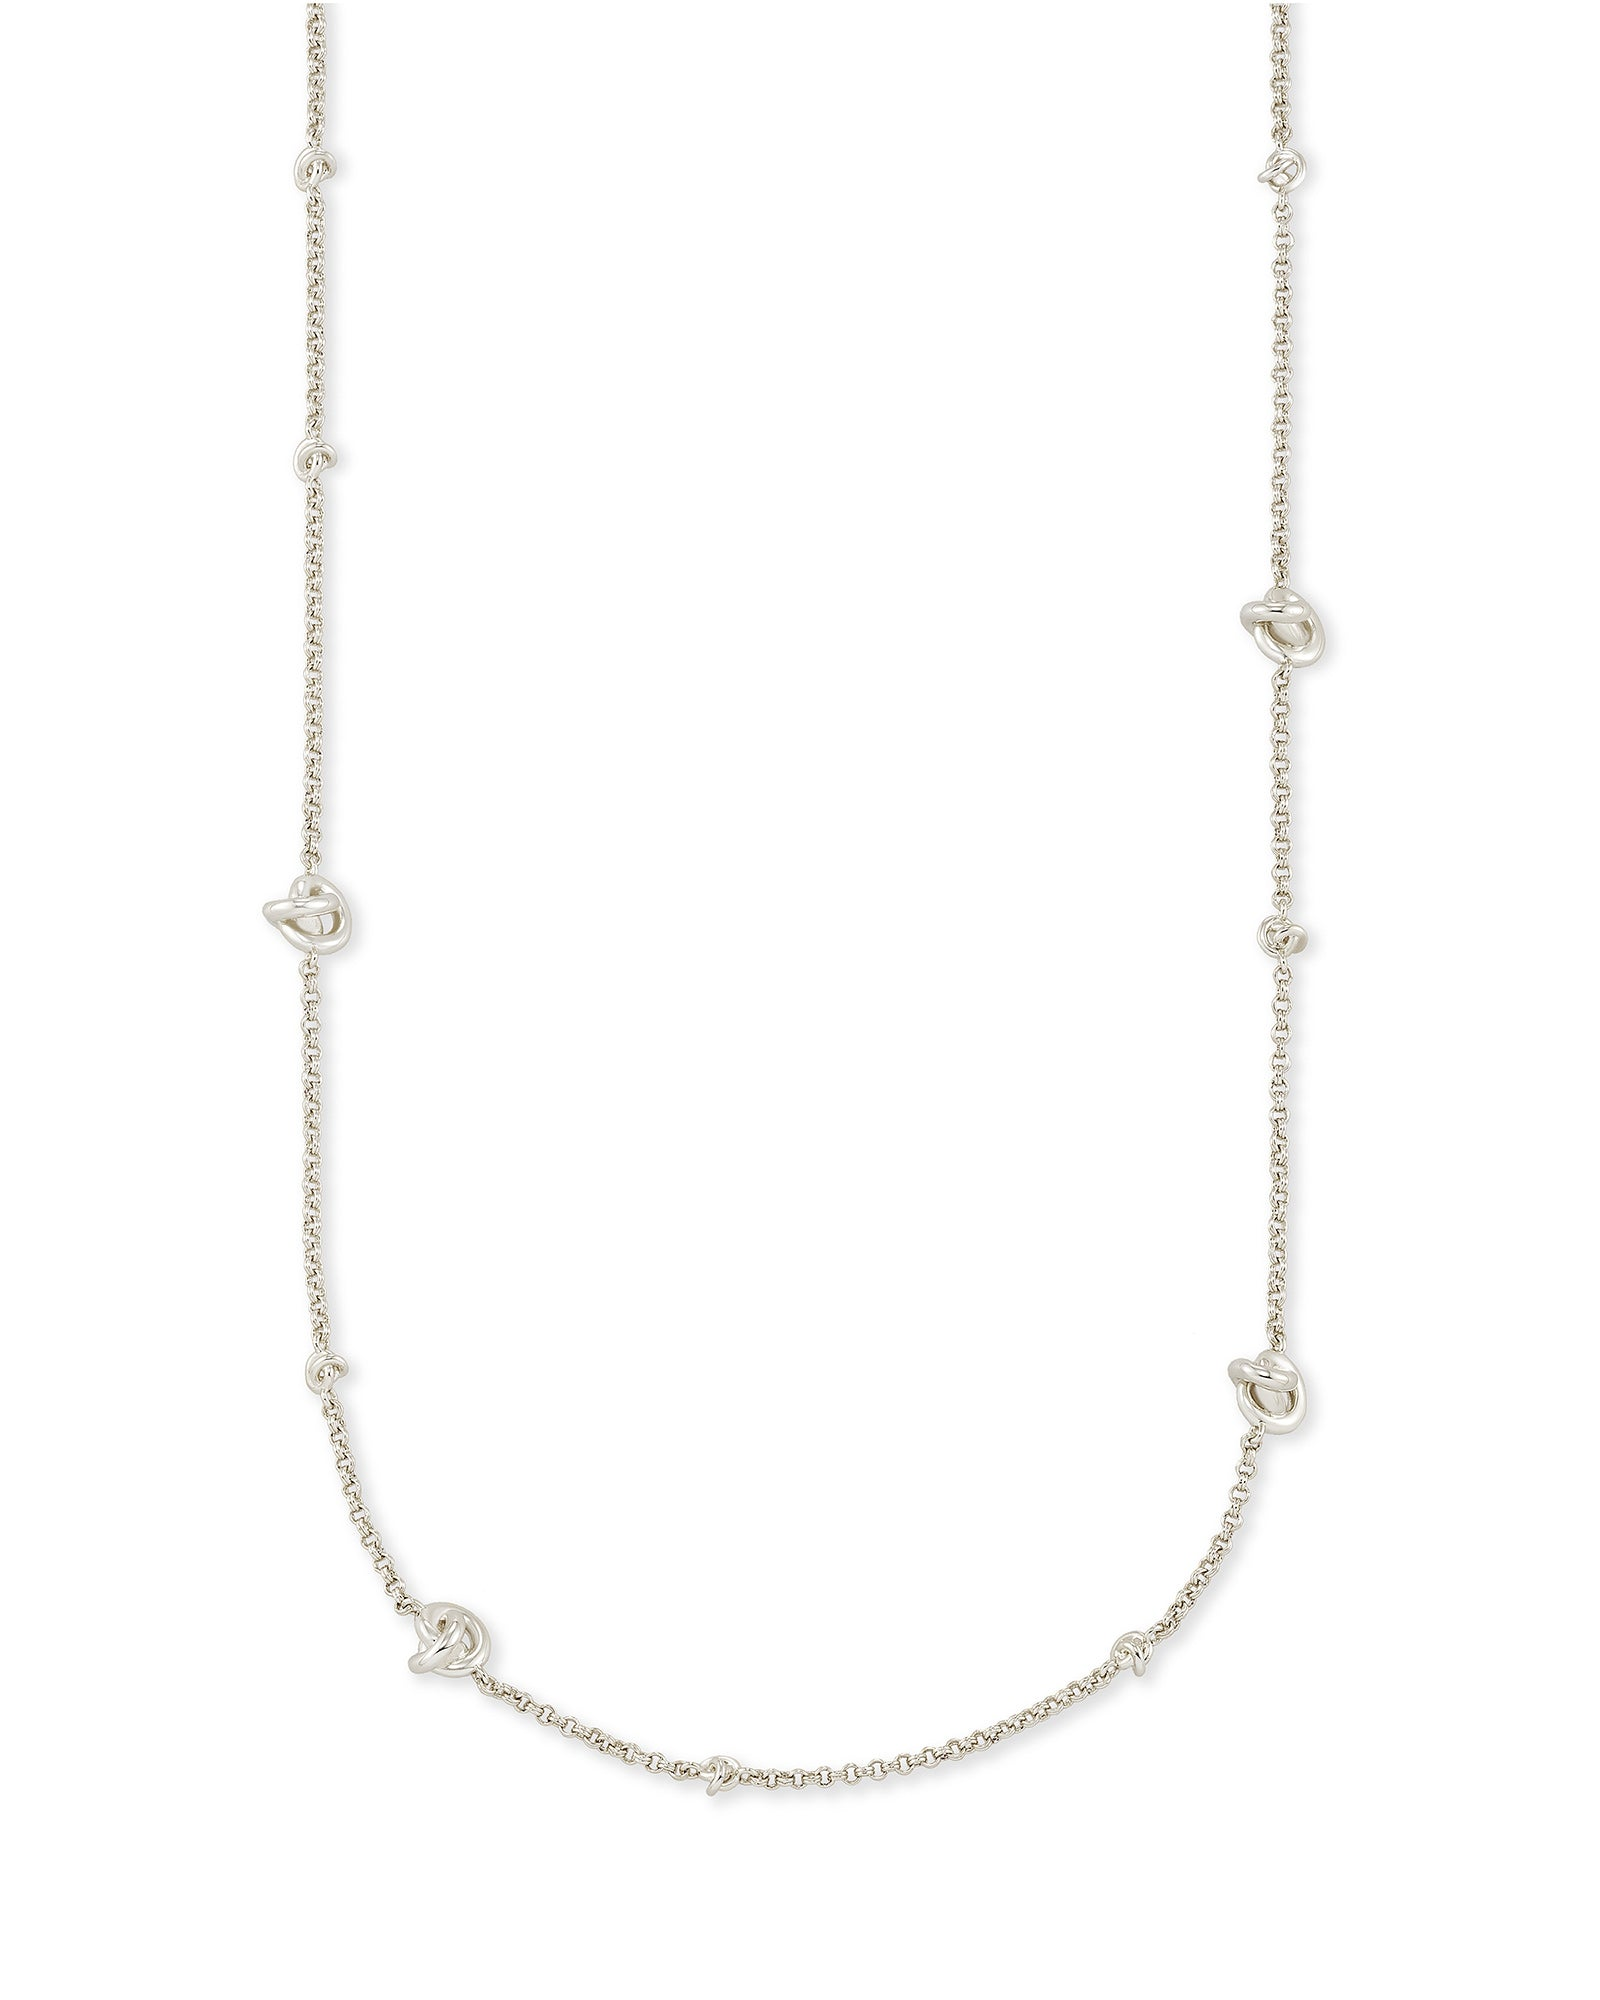 Kendra Scott Presleigh Adjustable Necklace In Bright Silver